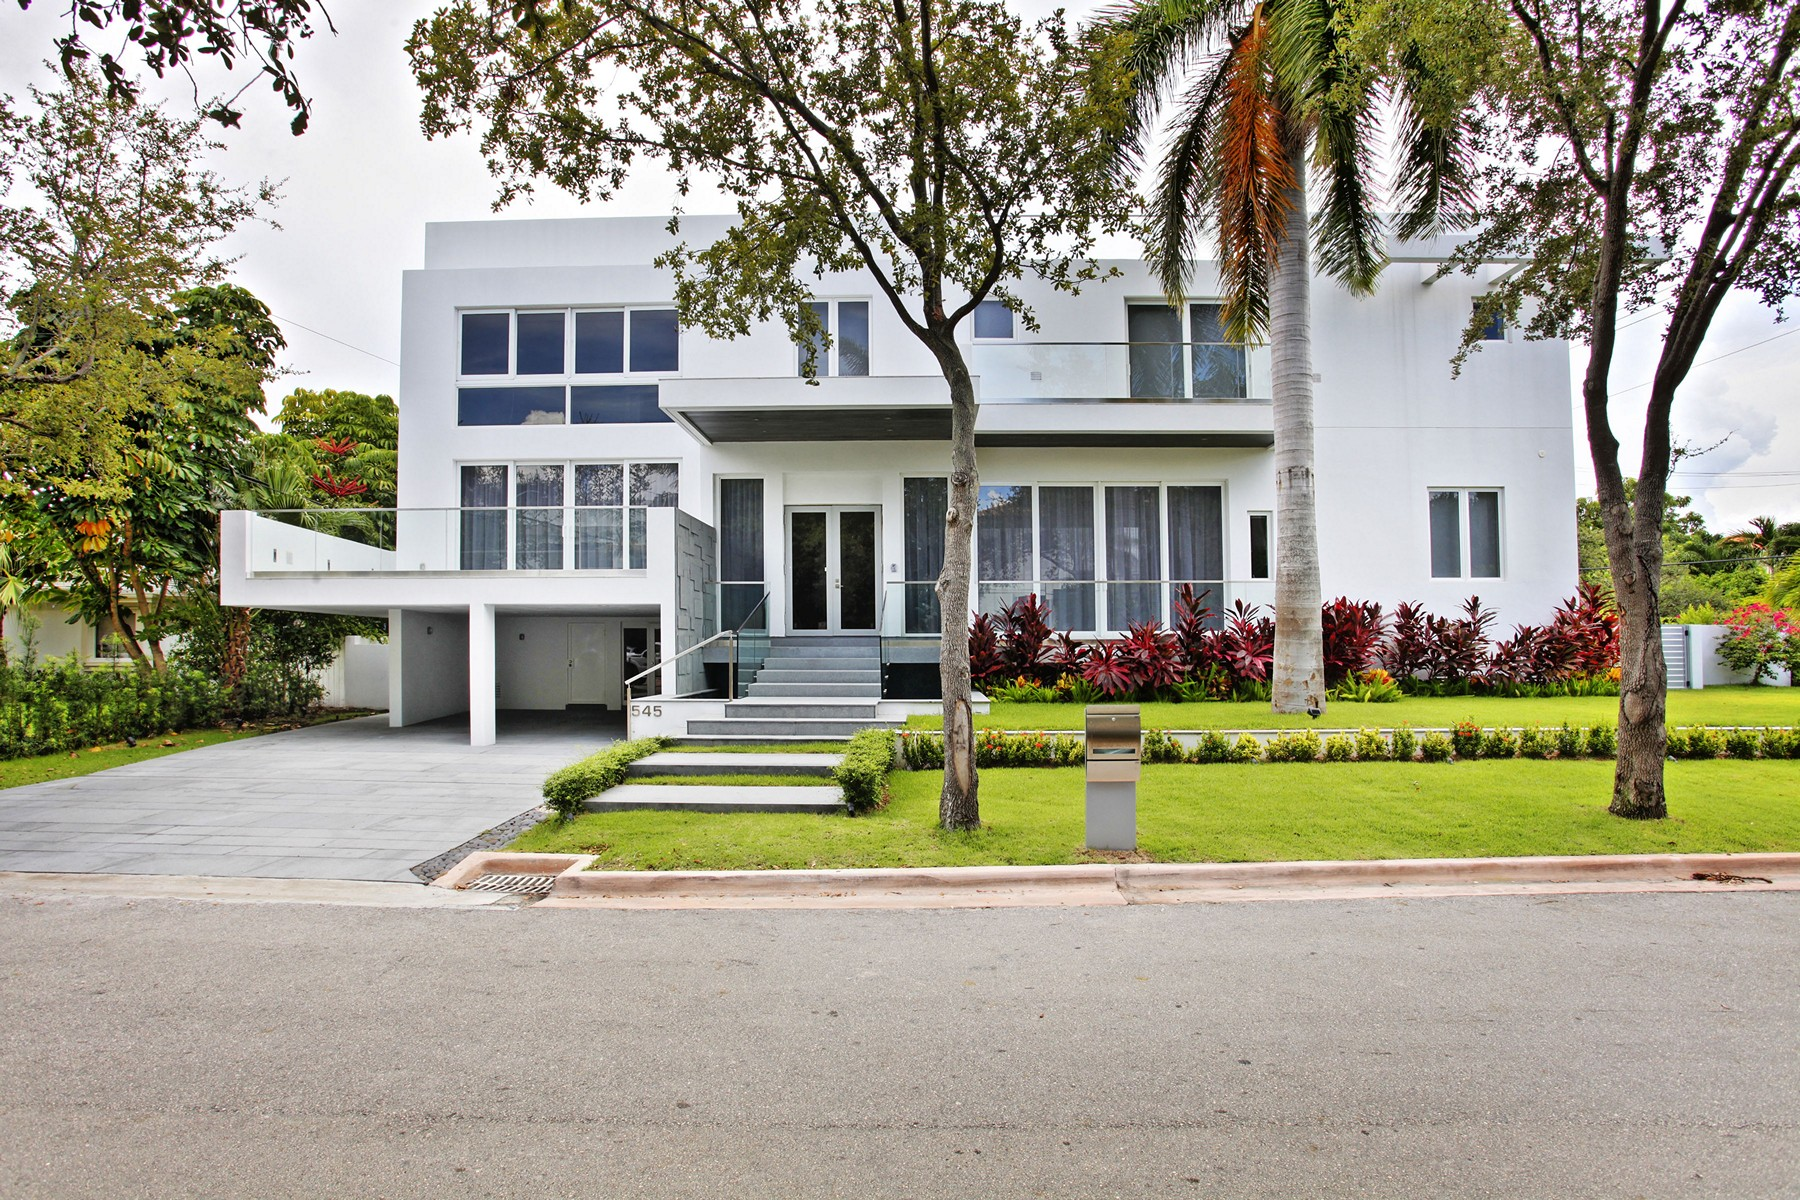 Single Family Home for Sale at 545 Glenridge Rd Key Biscayne, Florida 33149 United States